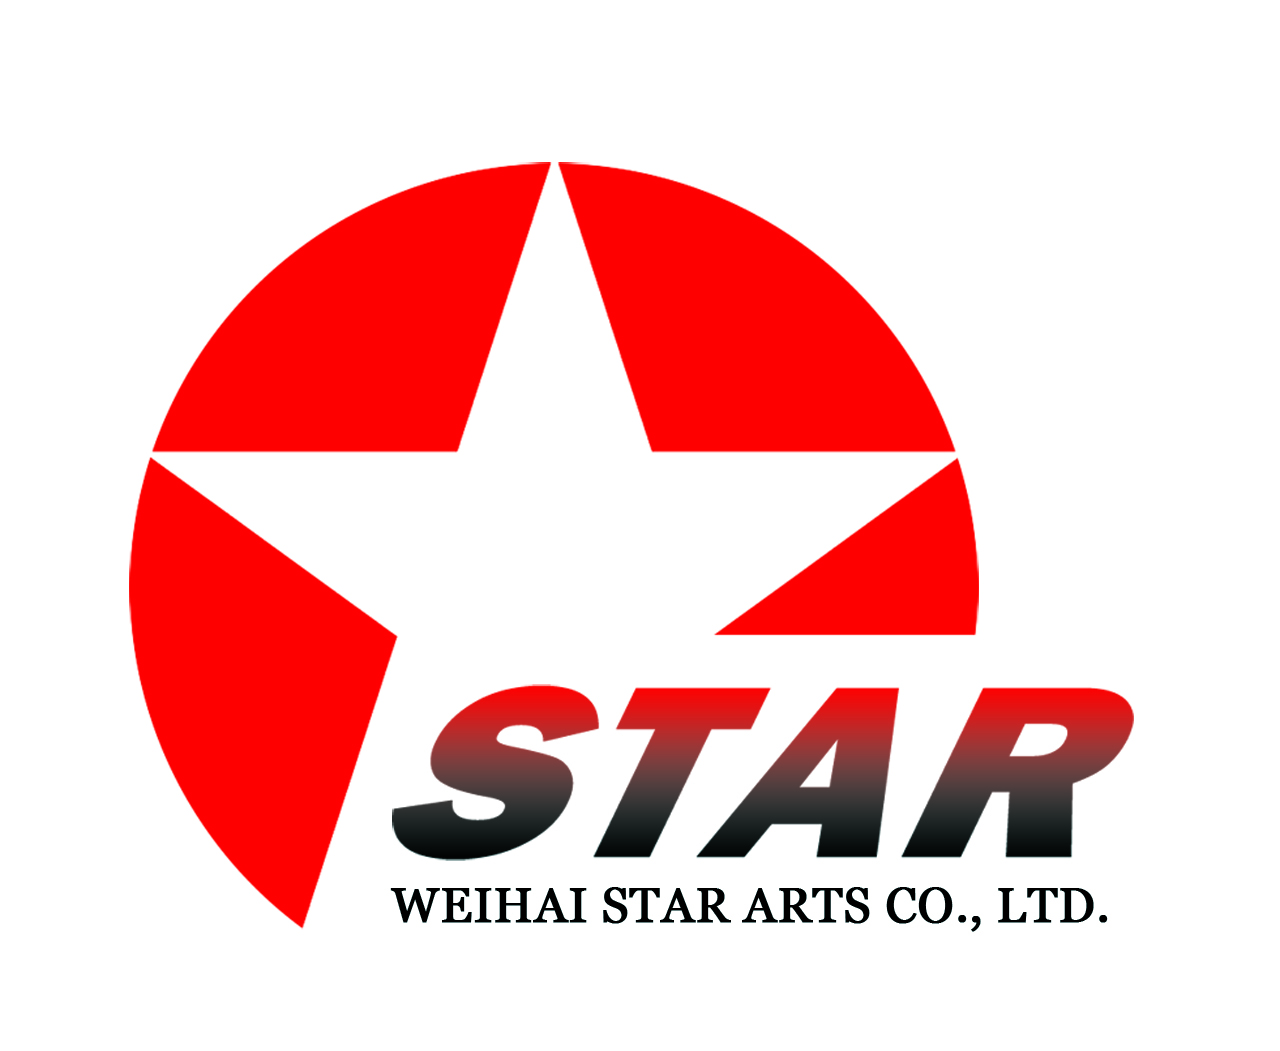 Weihai Star Arts Co., Ltd.